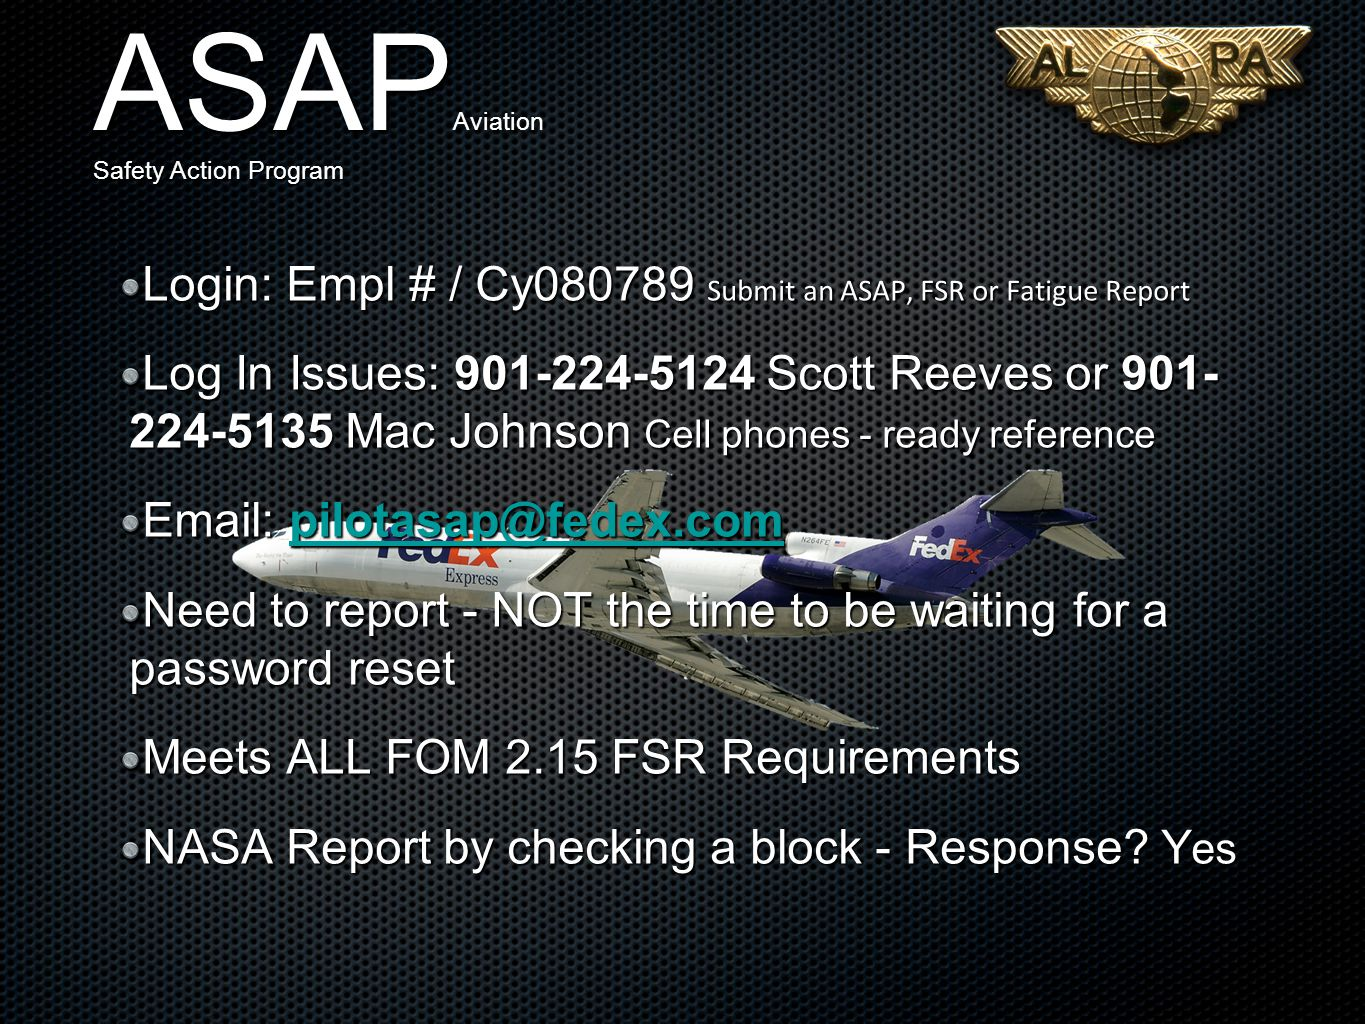 Login: Empl # / Cy080789 Submit an ASAP, FSR or Fatigue Report Log In Issues: 901-224-5124 Scott Reeves or 901- 224-5135 Mac Johnson Cell phones - ready reference Email: pilotasap@fedex.com pilotasap@fedex.com Need to report - NOT the time to be waiting for a password reset Meets ALL FOM 2.15 FSR Requirements NASA Report by checking a block - Response.